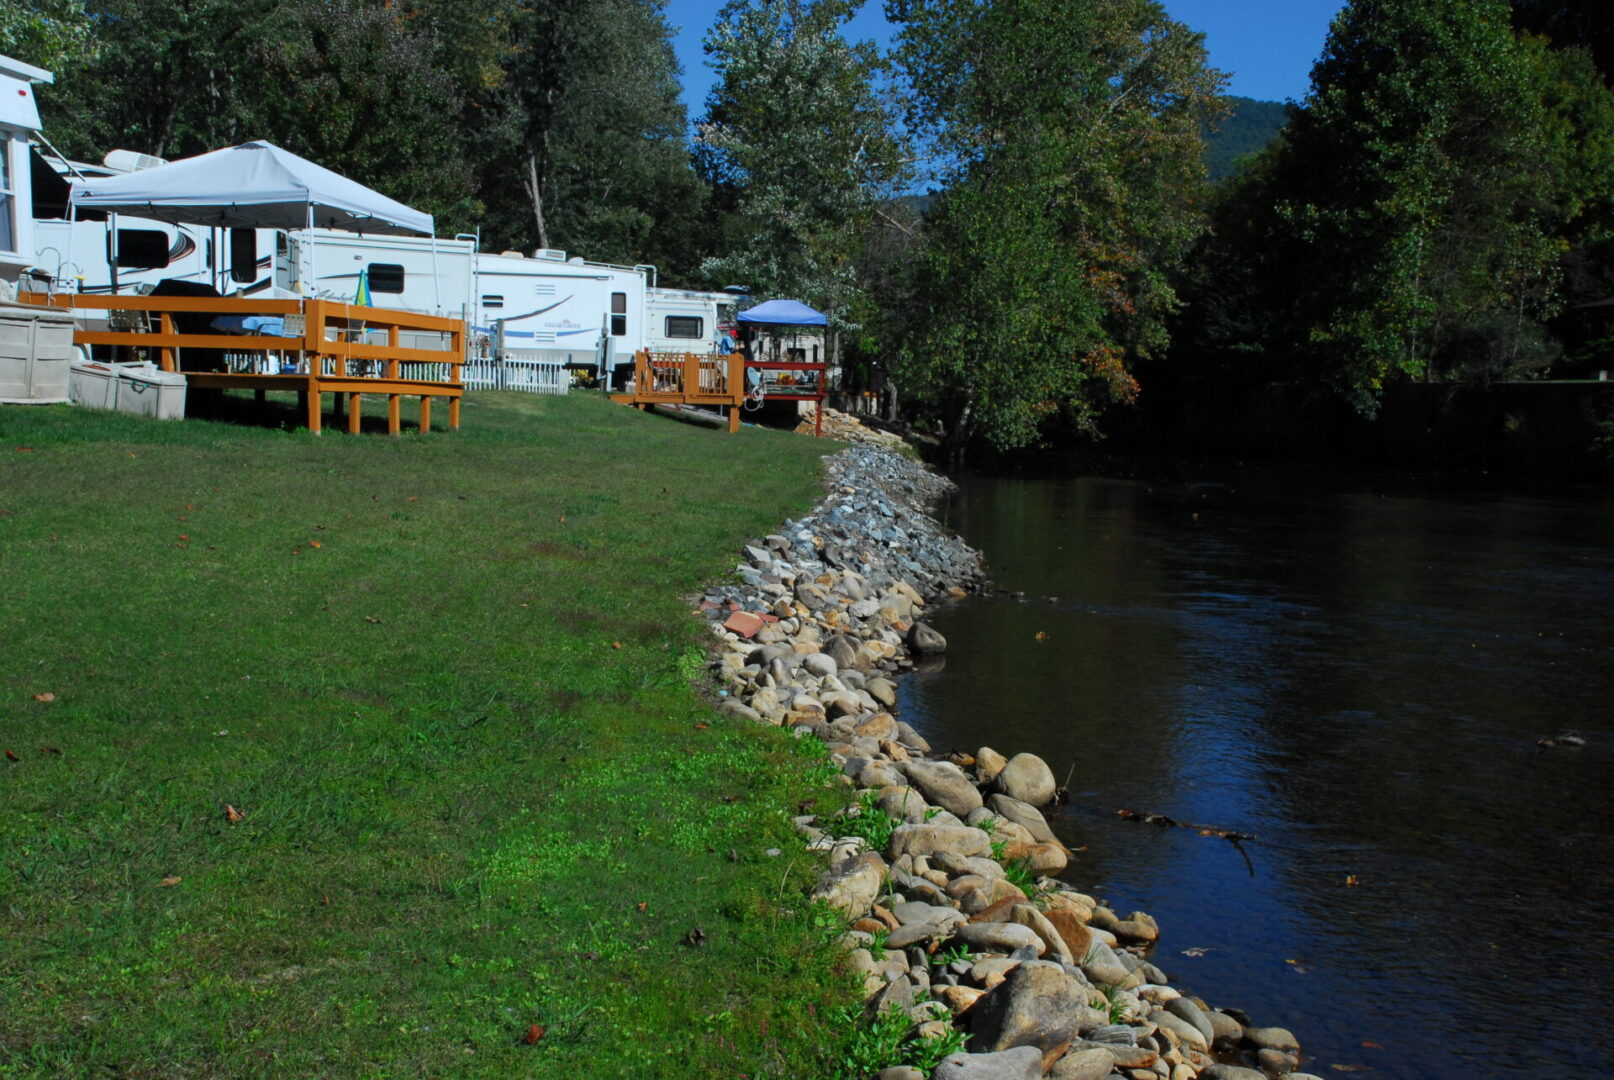 A trailer park on a riverbank